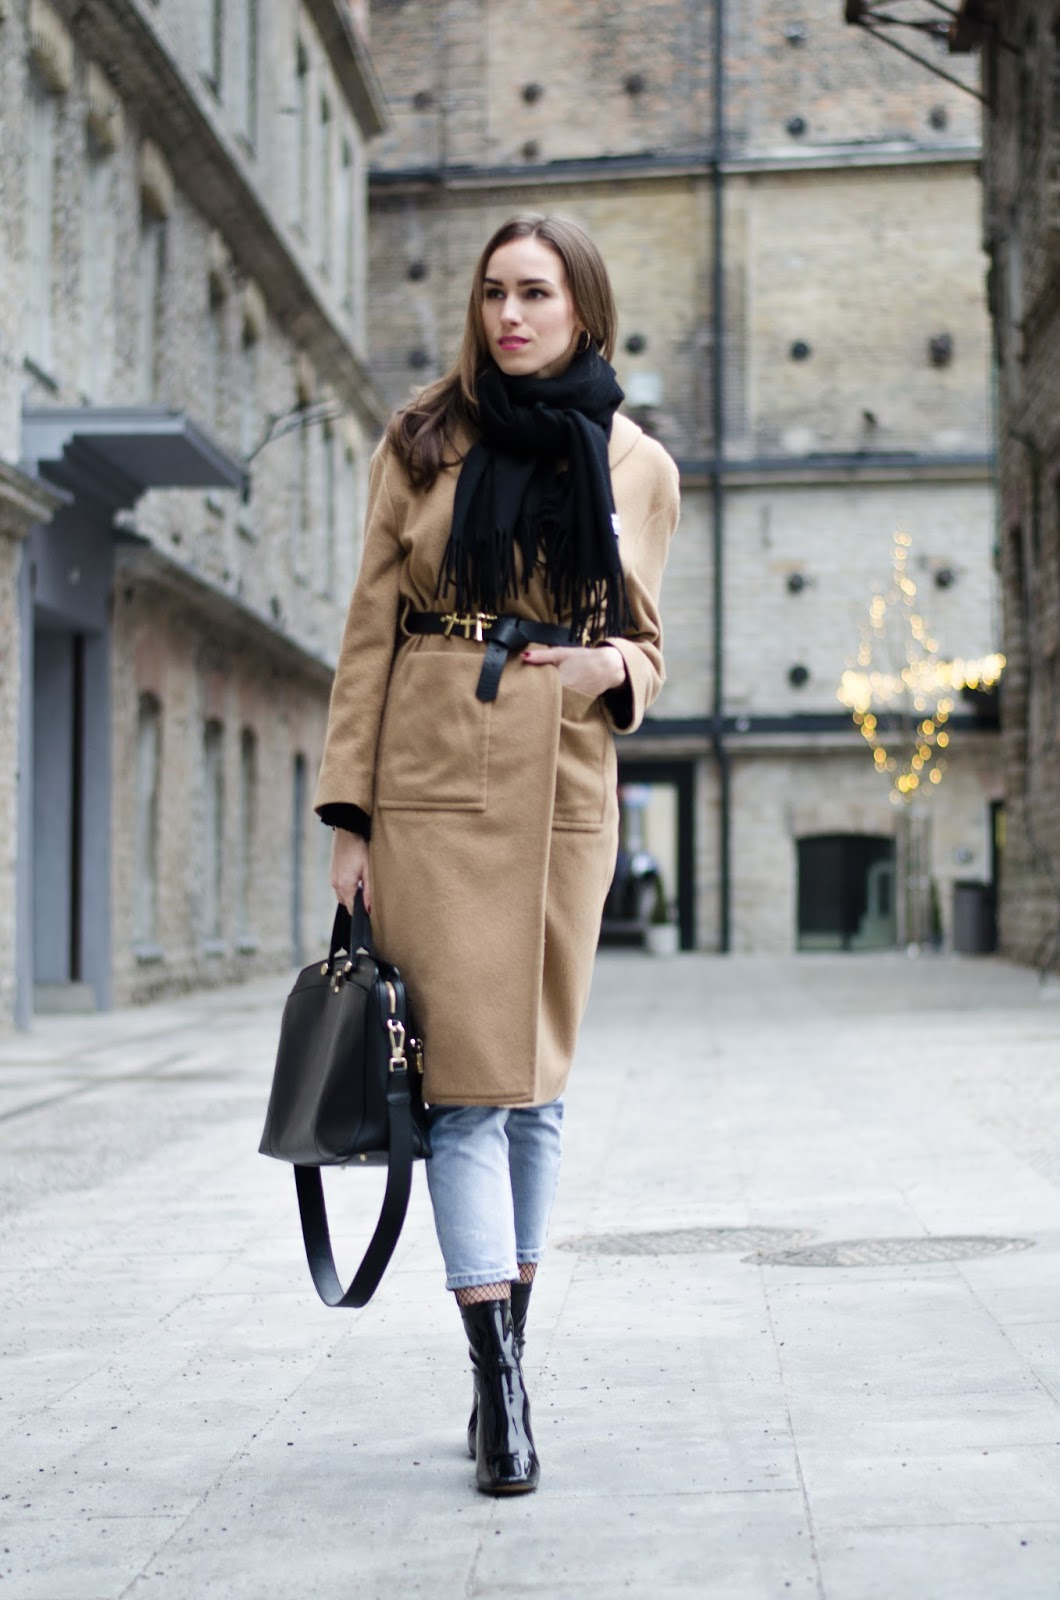 kristjaana mere acne scarf coat winter outfit